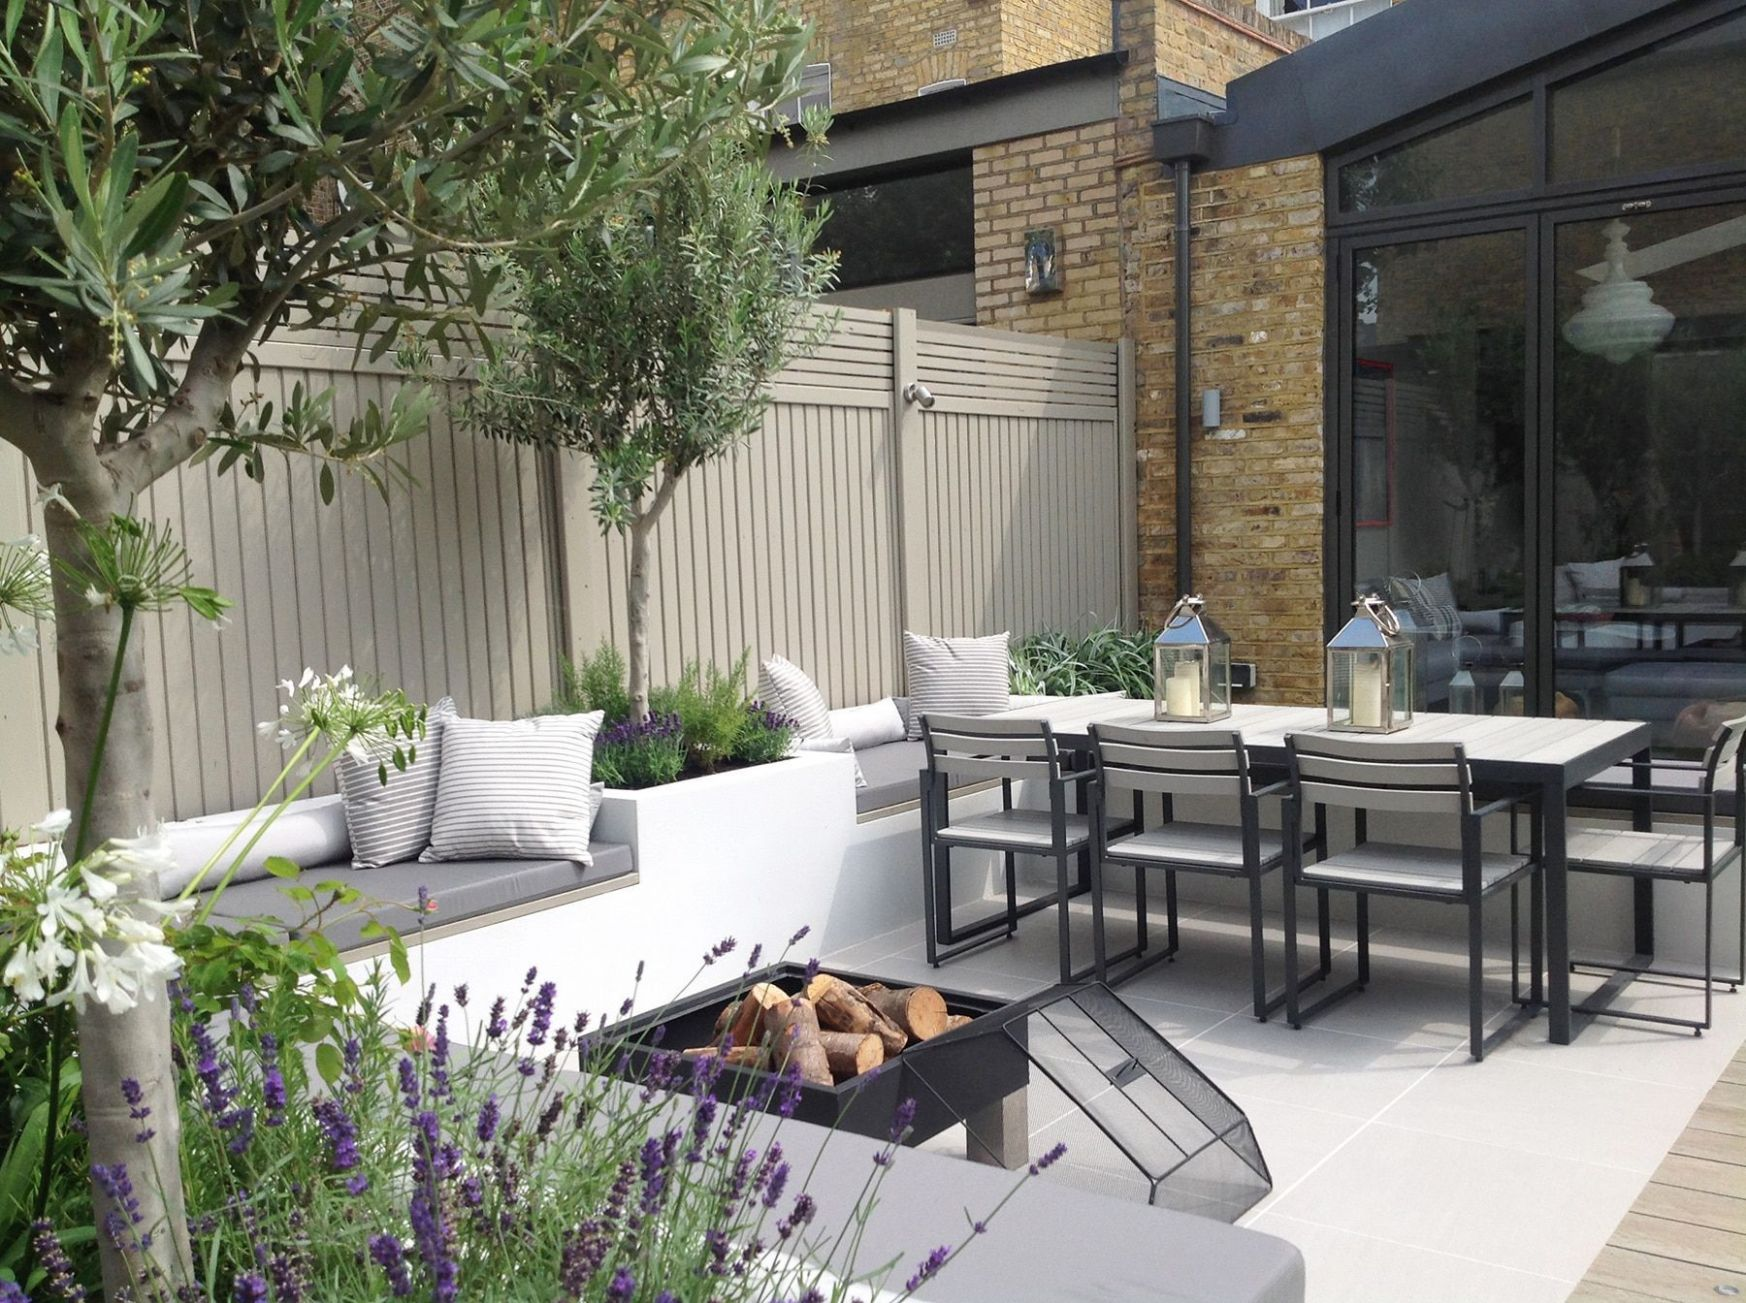 garden design for seating area with firepit (With images) | Garden ..